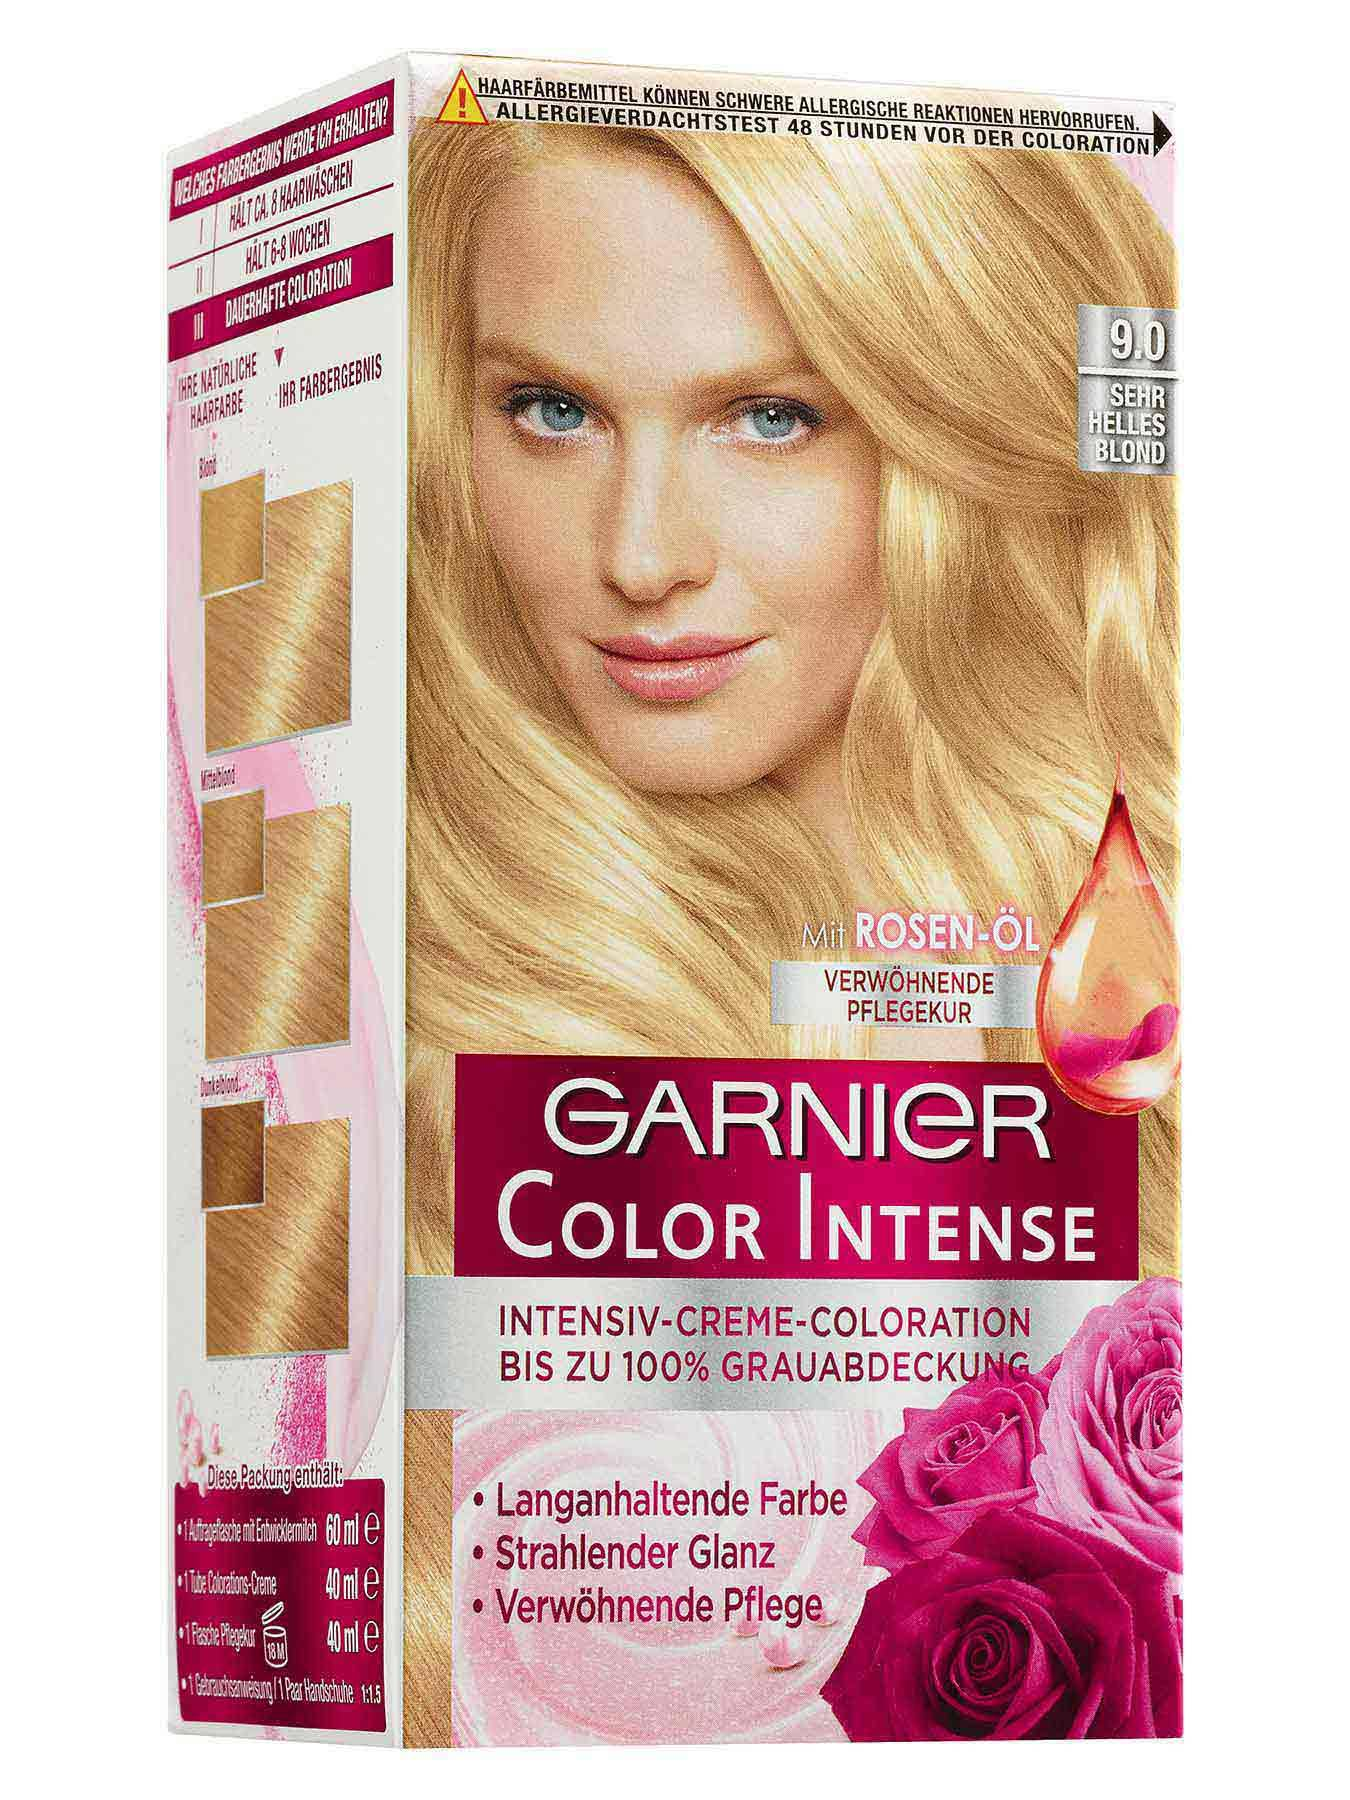 9-0-Sehr-helles-Blond-Intensiv-Creme-Coloration-Color-Intense-1Stk-Vorderseite-Garnier-DE-gr